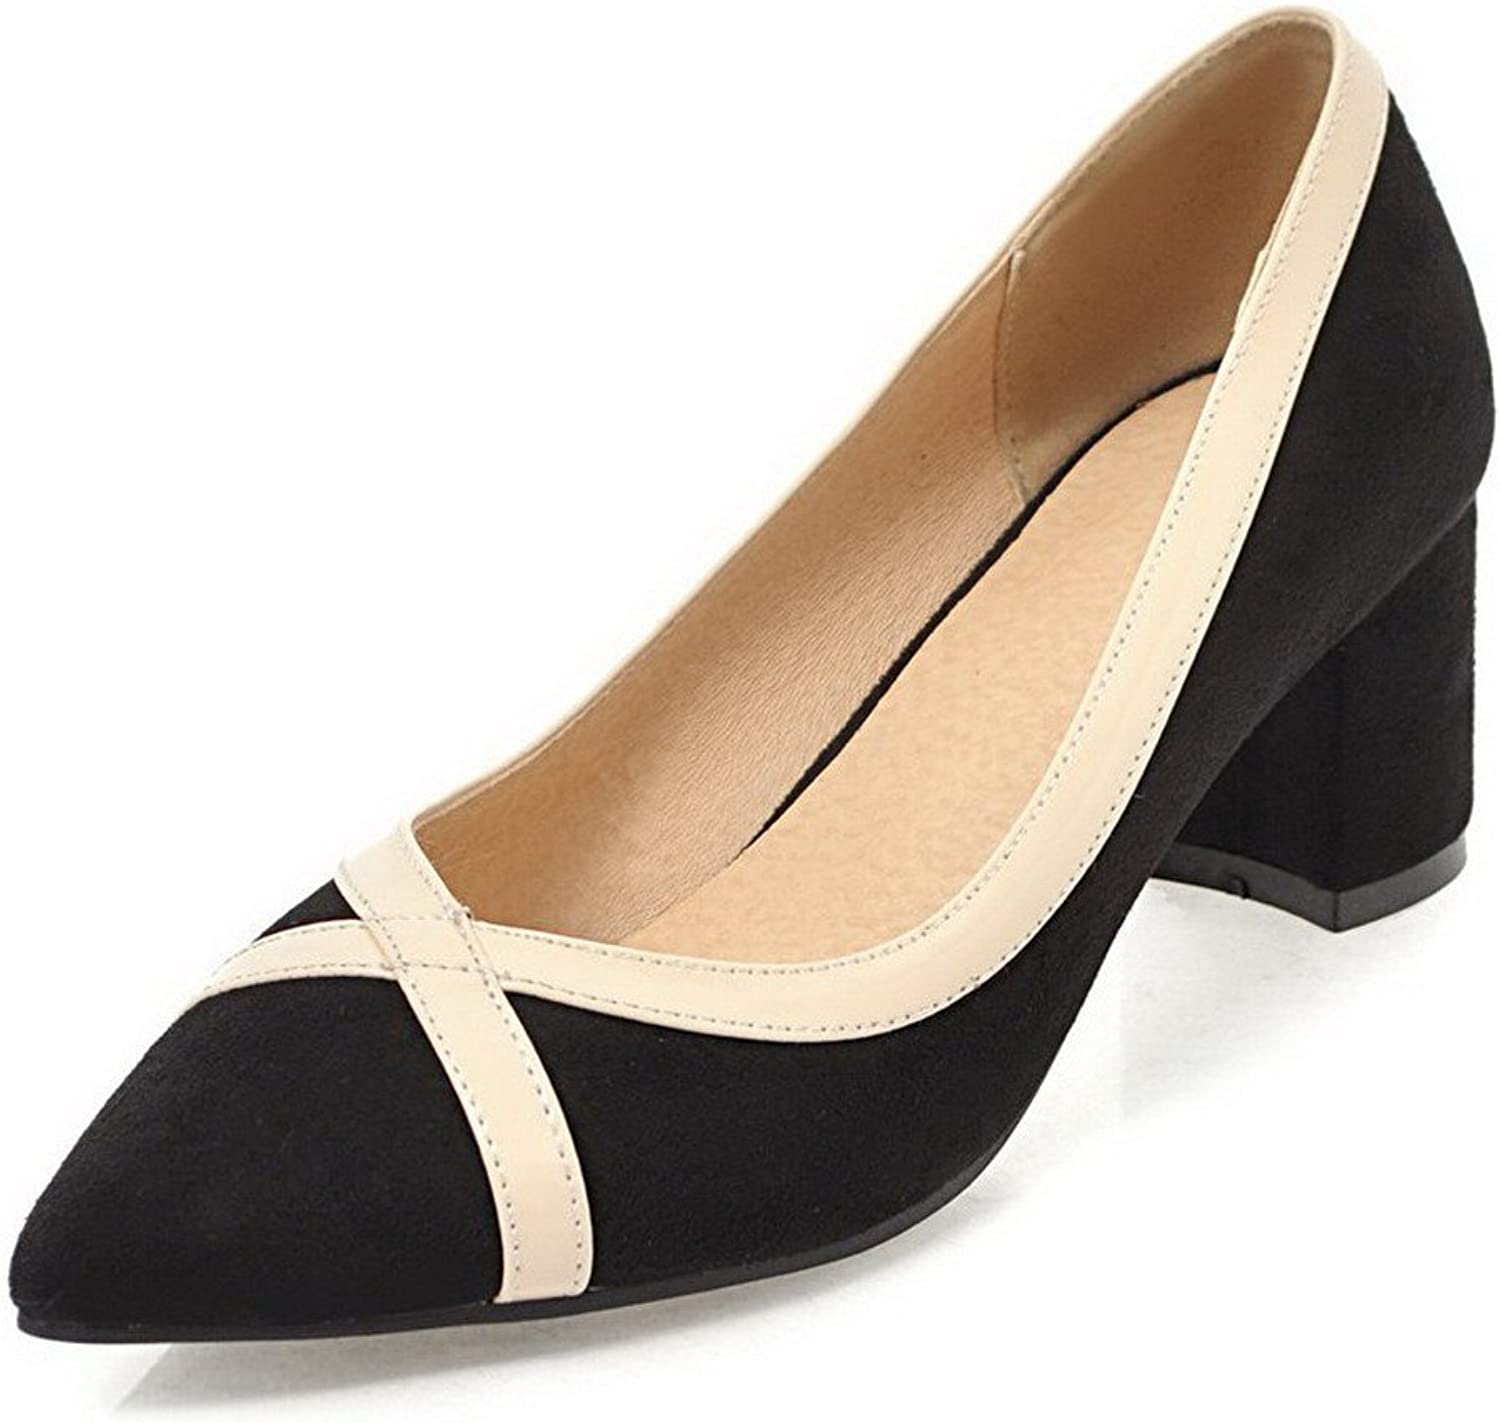 WeenFashion Women's Pu Pointed-Toe Kitten-Heels Pull-On Court shoes